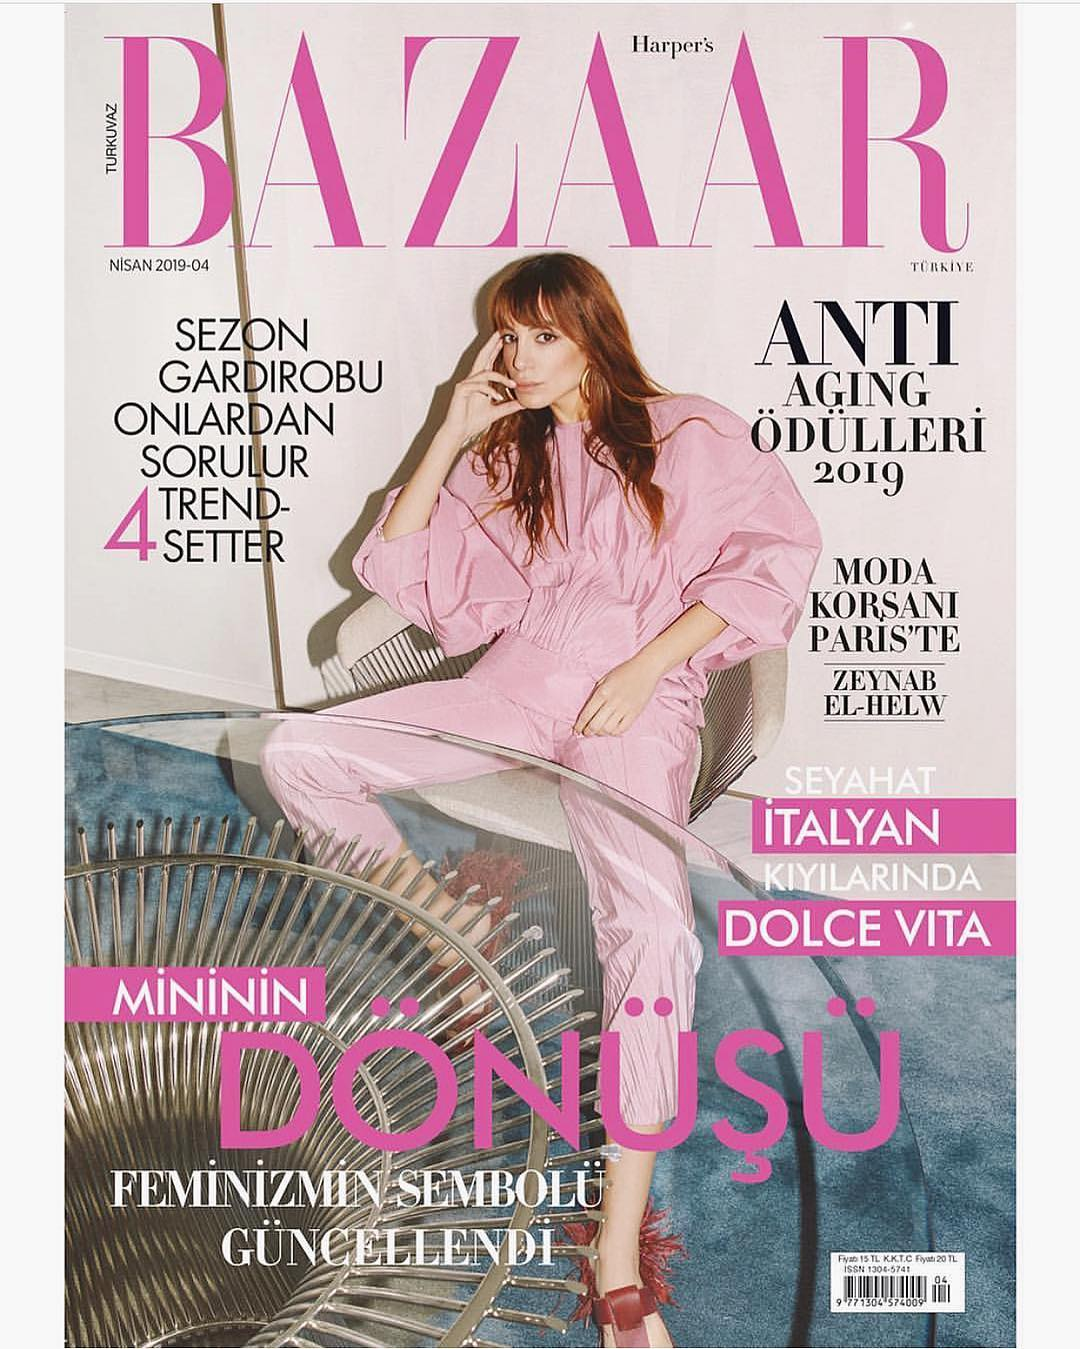 Fashion Pirate for Harper's Bazaar Turkey